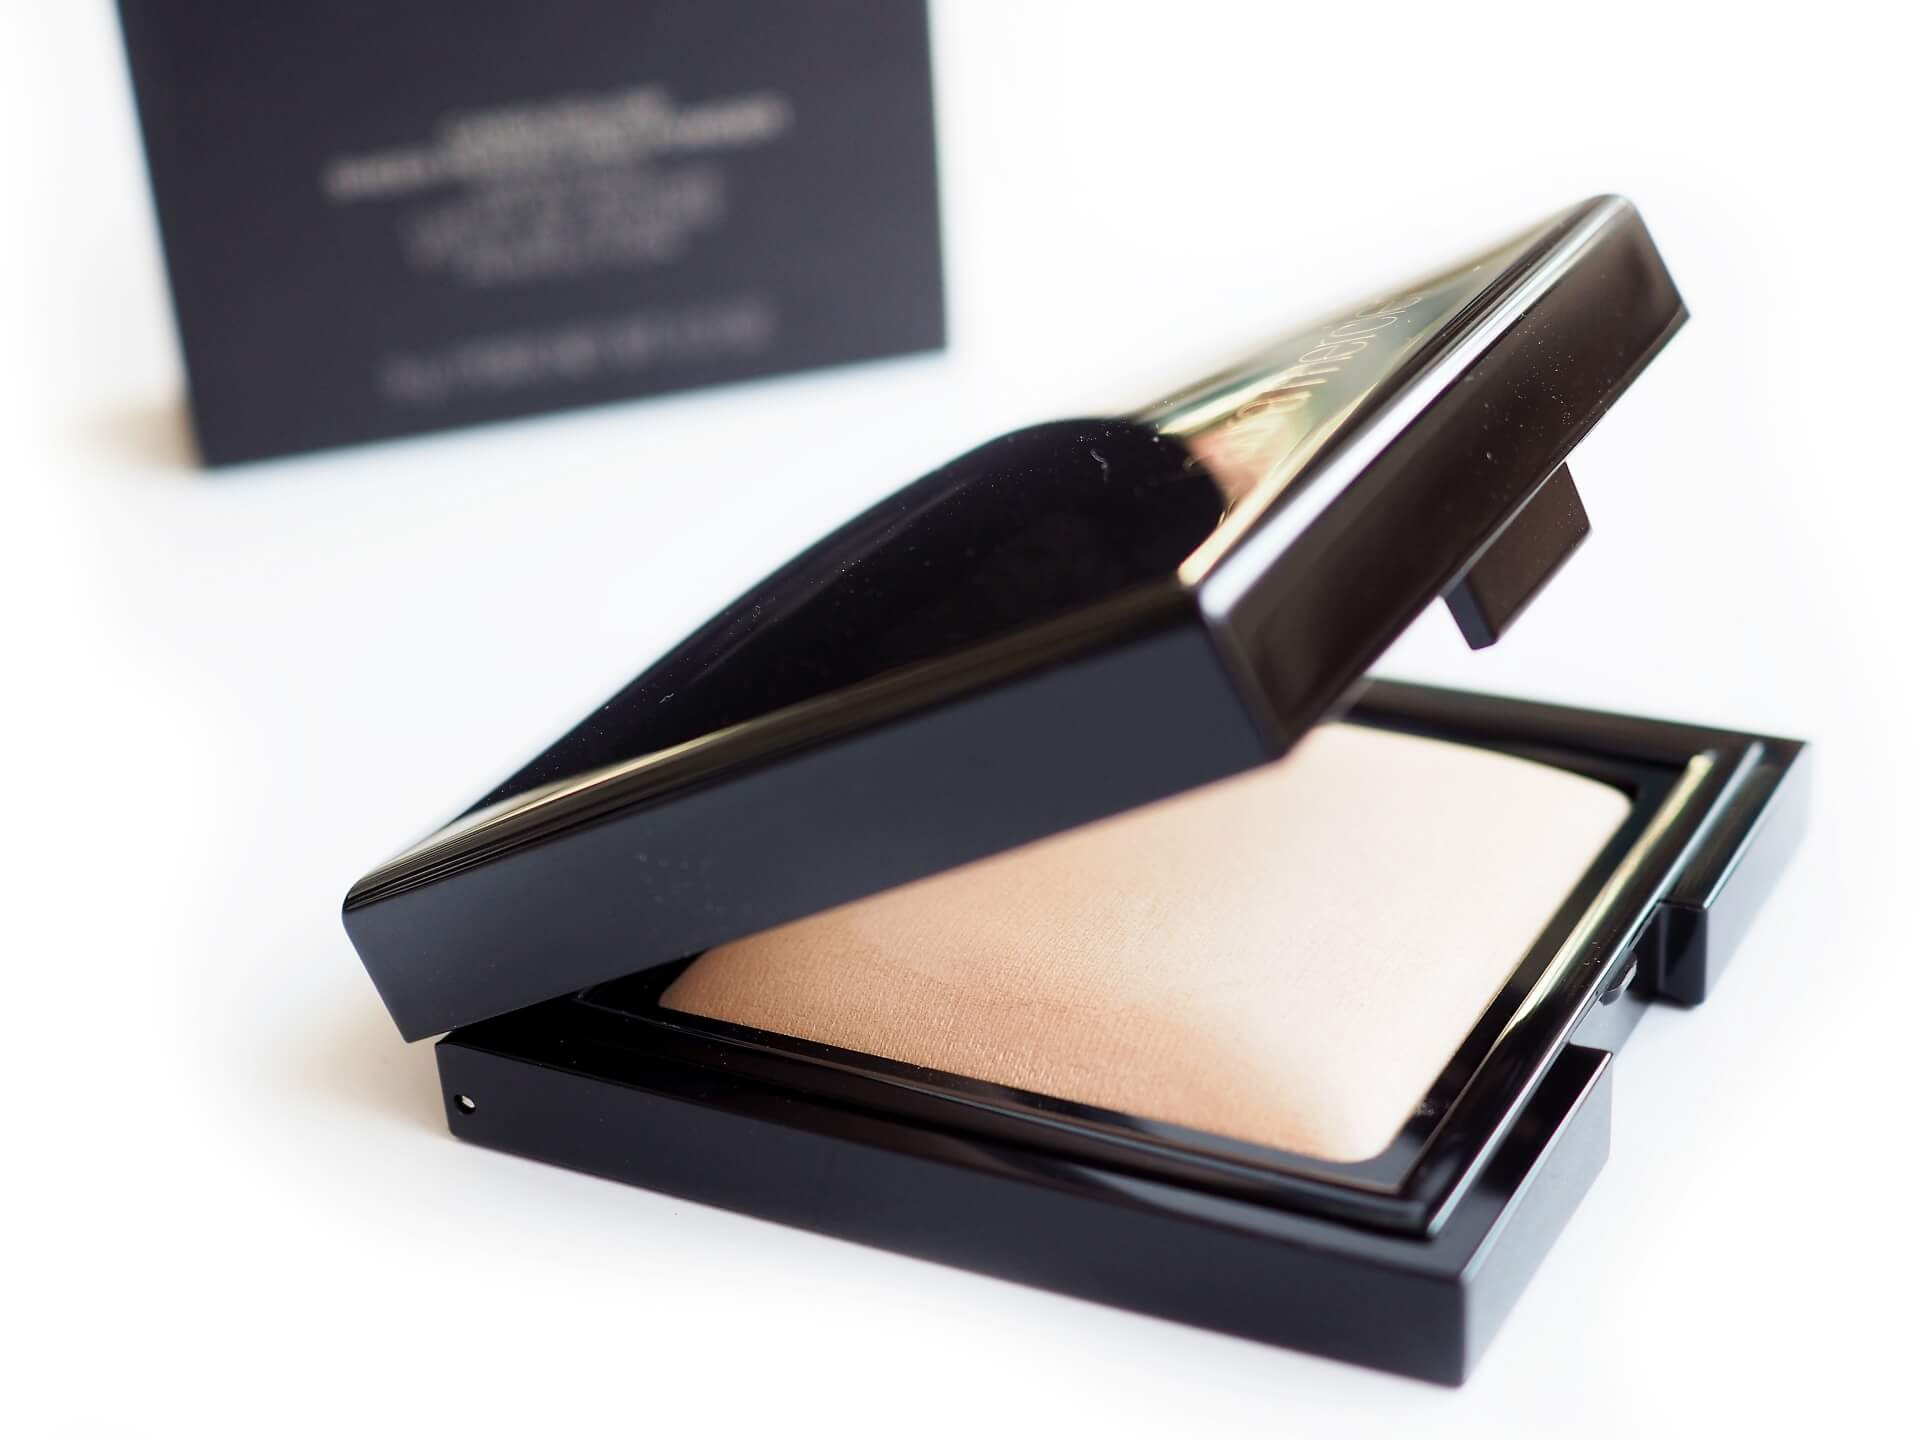 RECENZJA LAURA MERCIER CANDLEGLOW SHEER PERFECTING POWDER